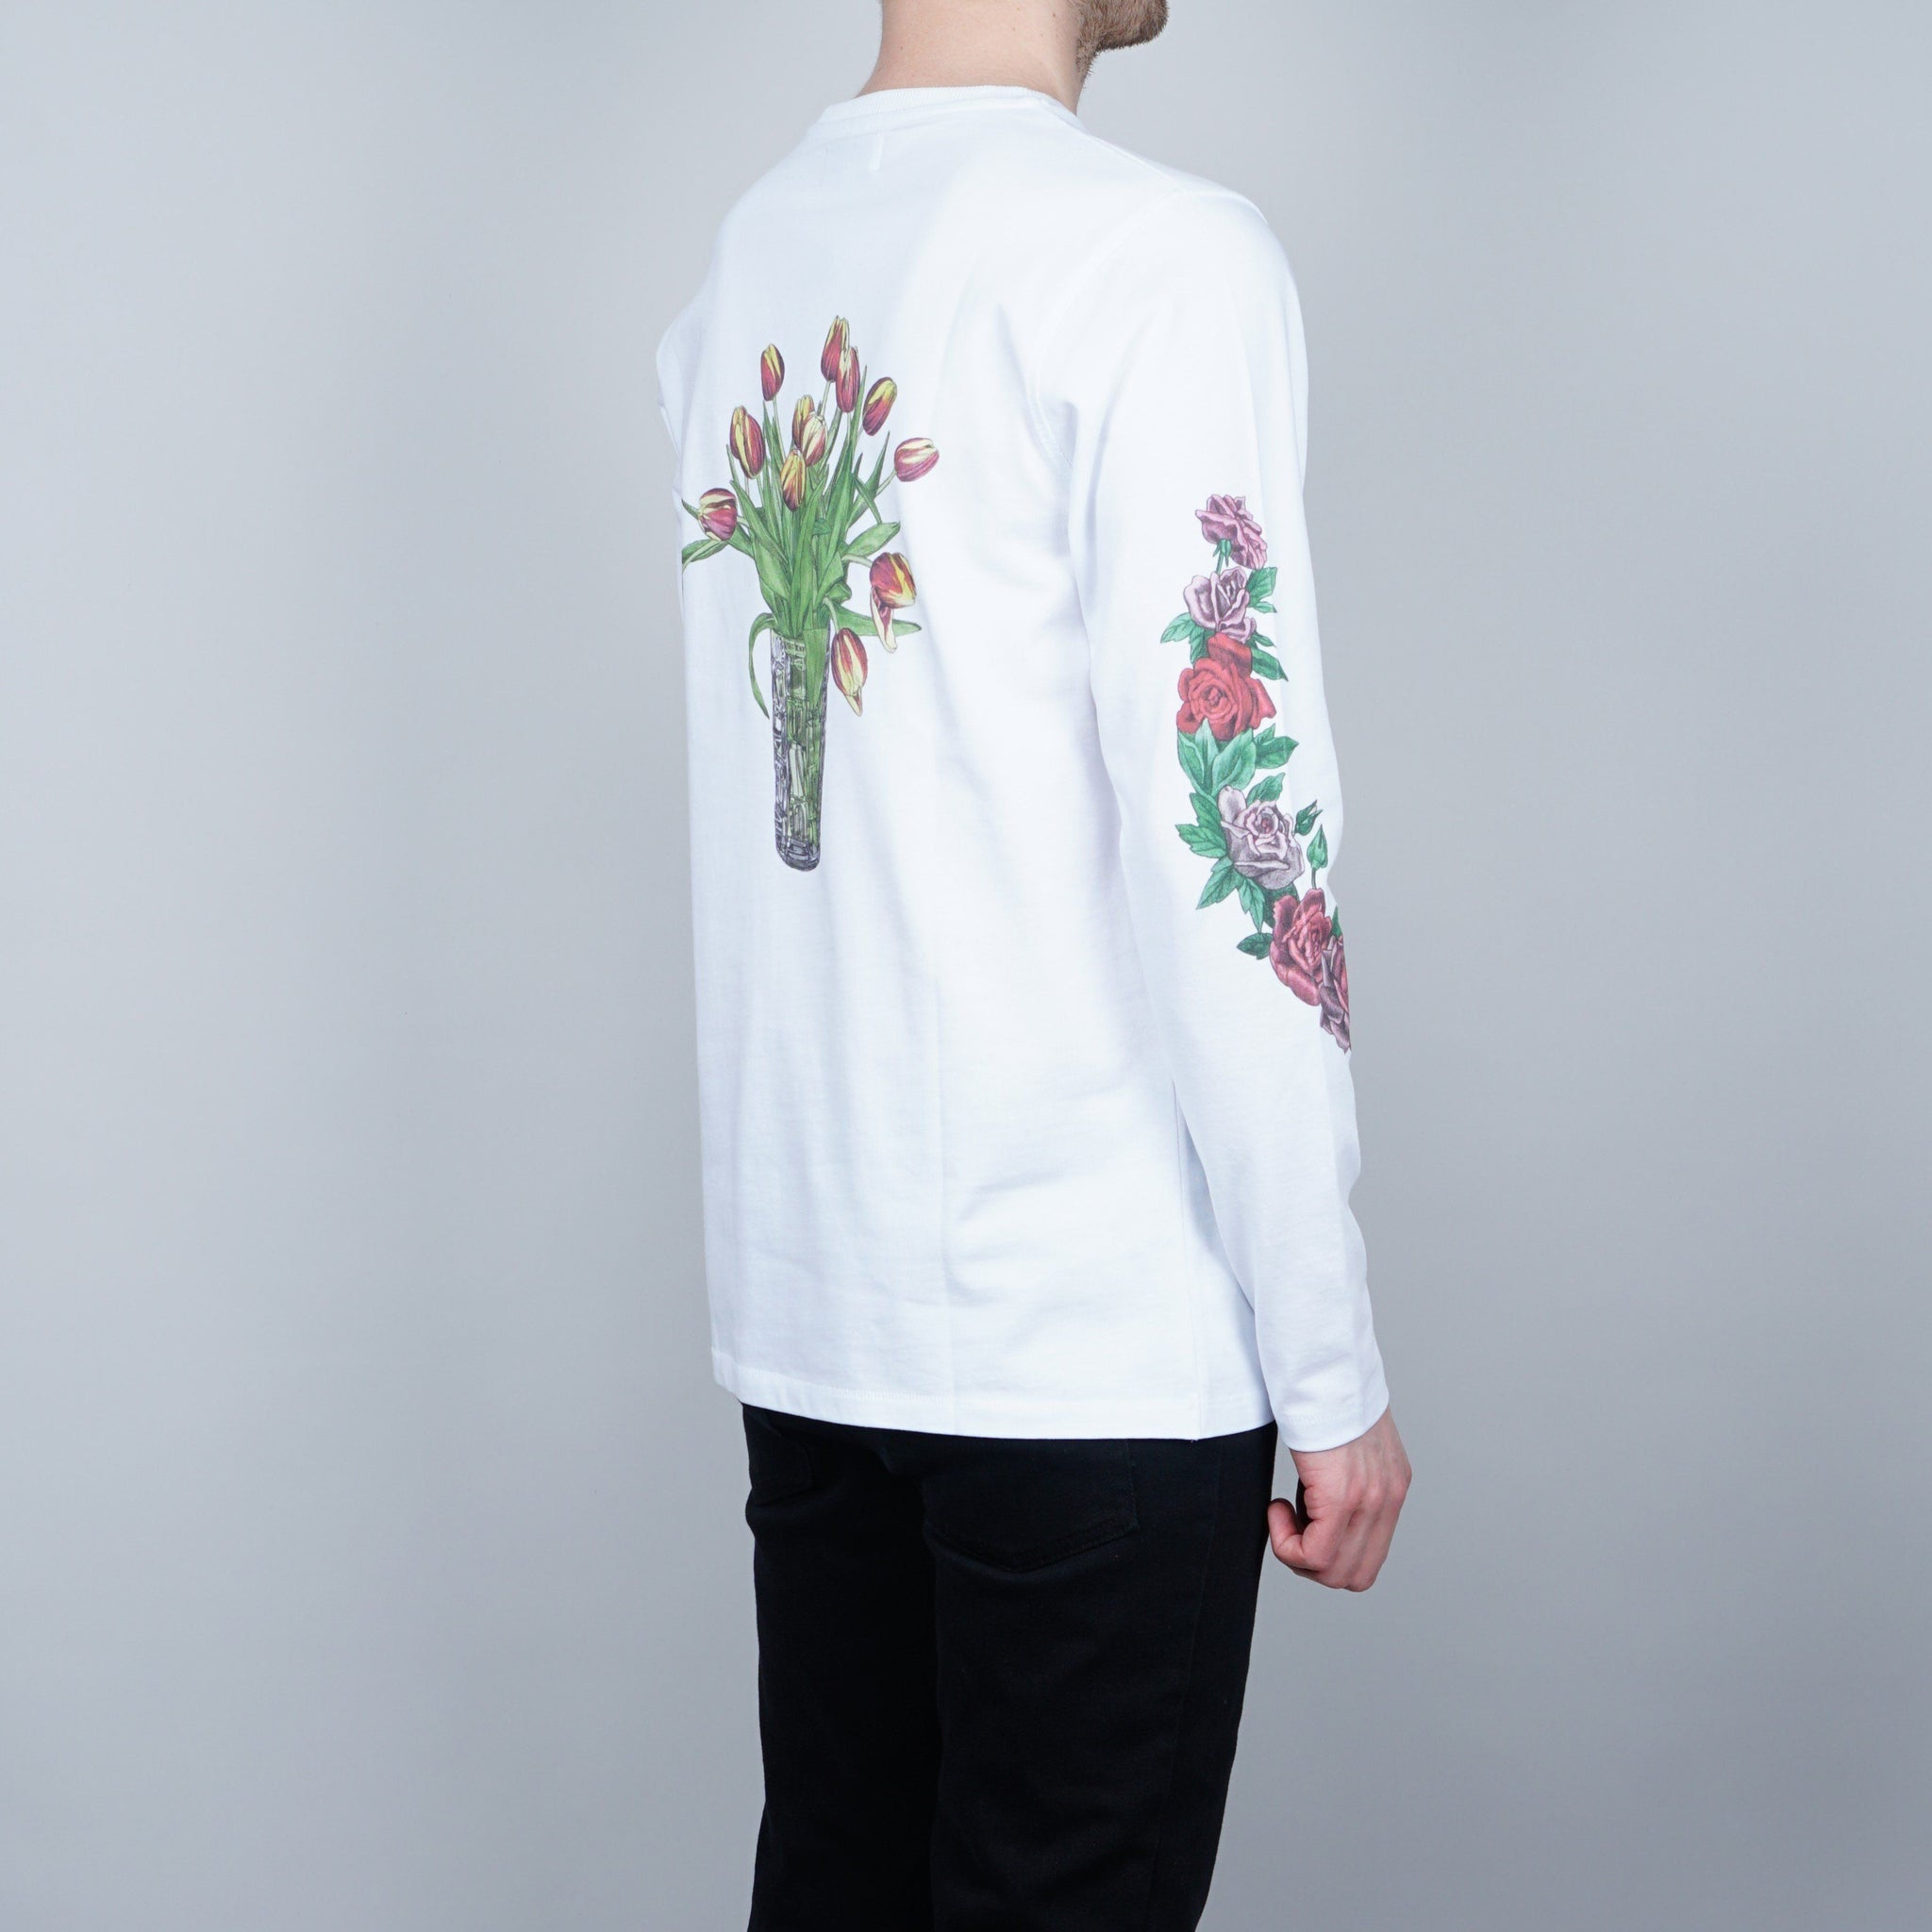 Soulland Vinton longsleeve - White with print